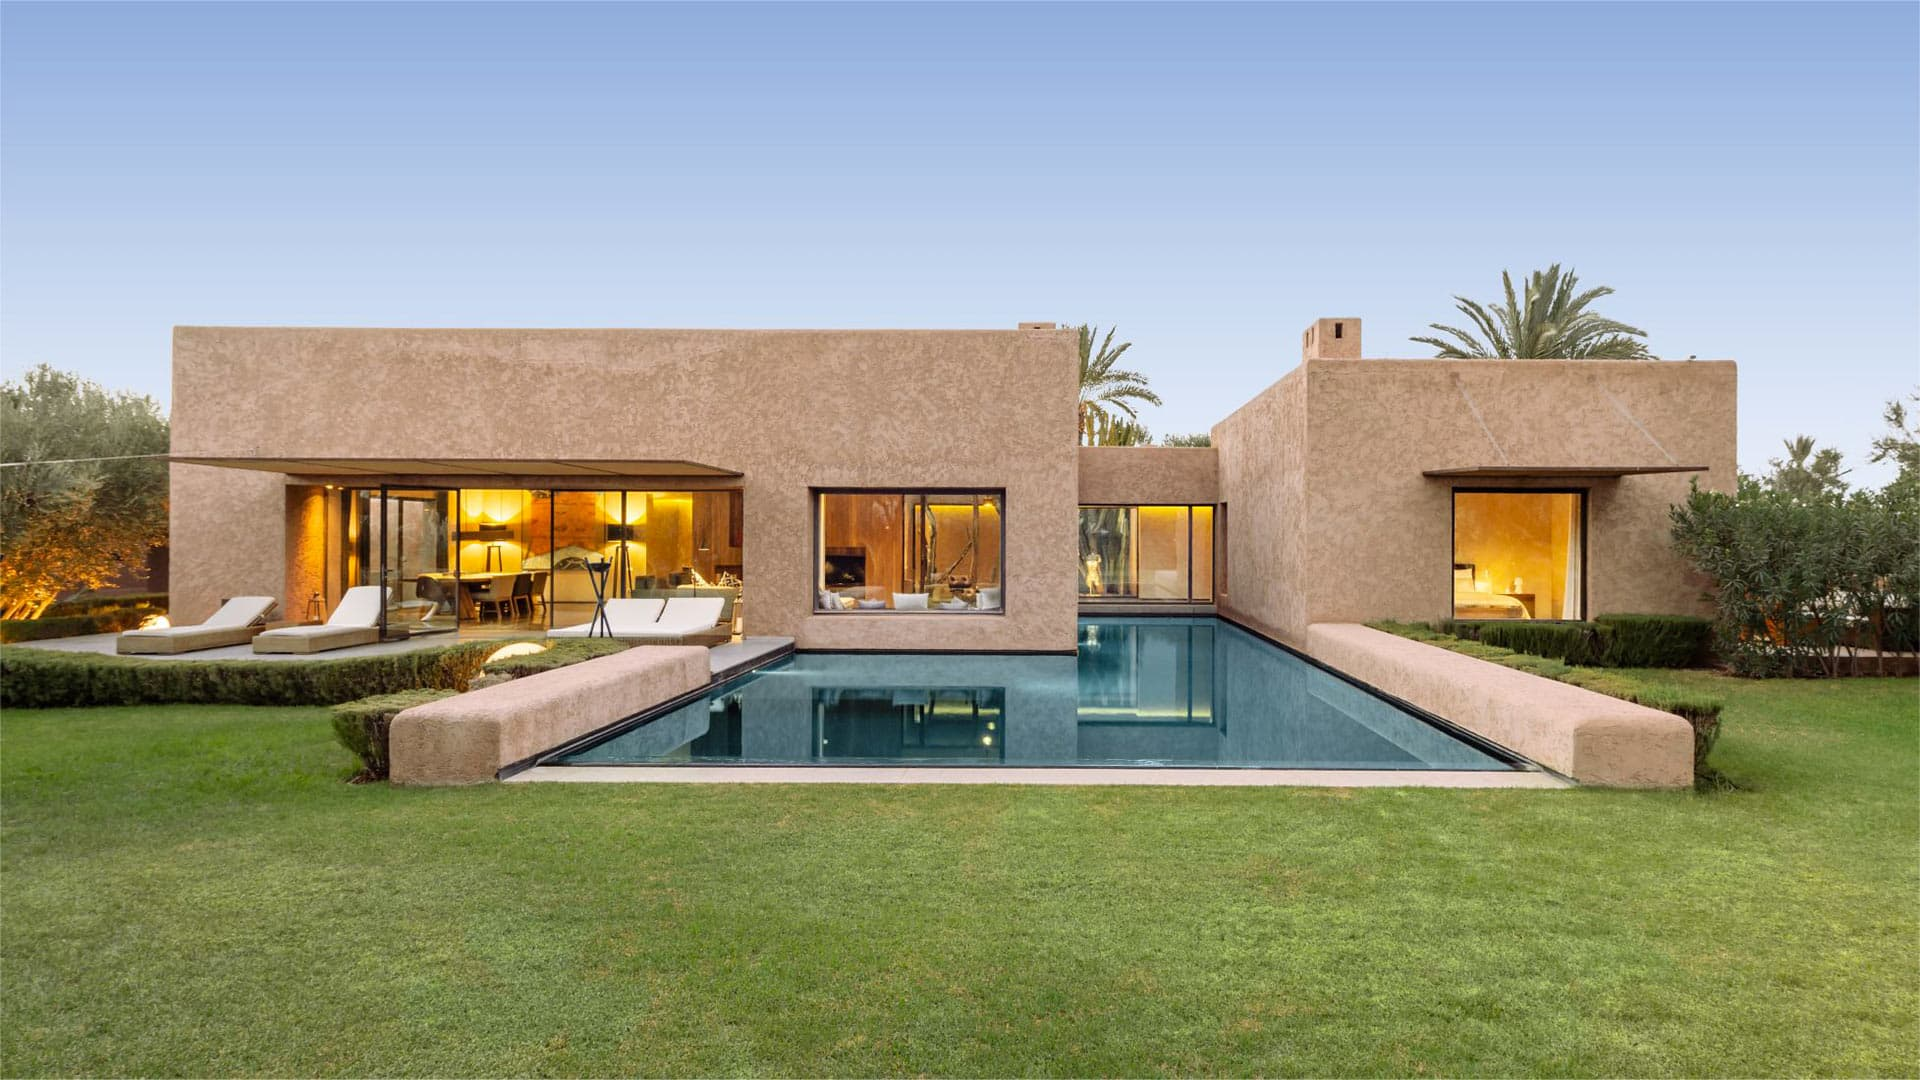 Villa Villa RL, Rental in Marrakech